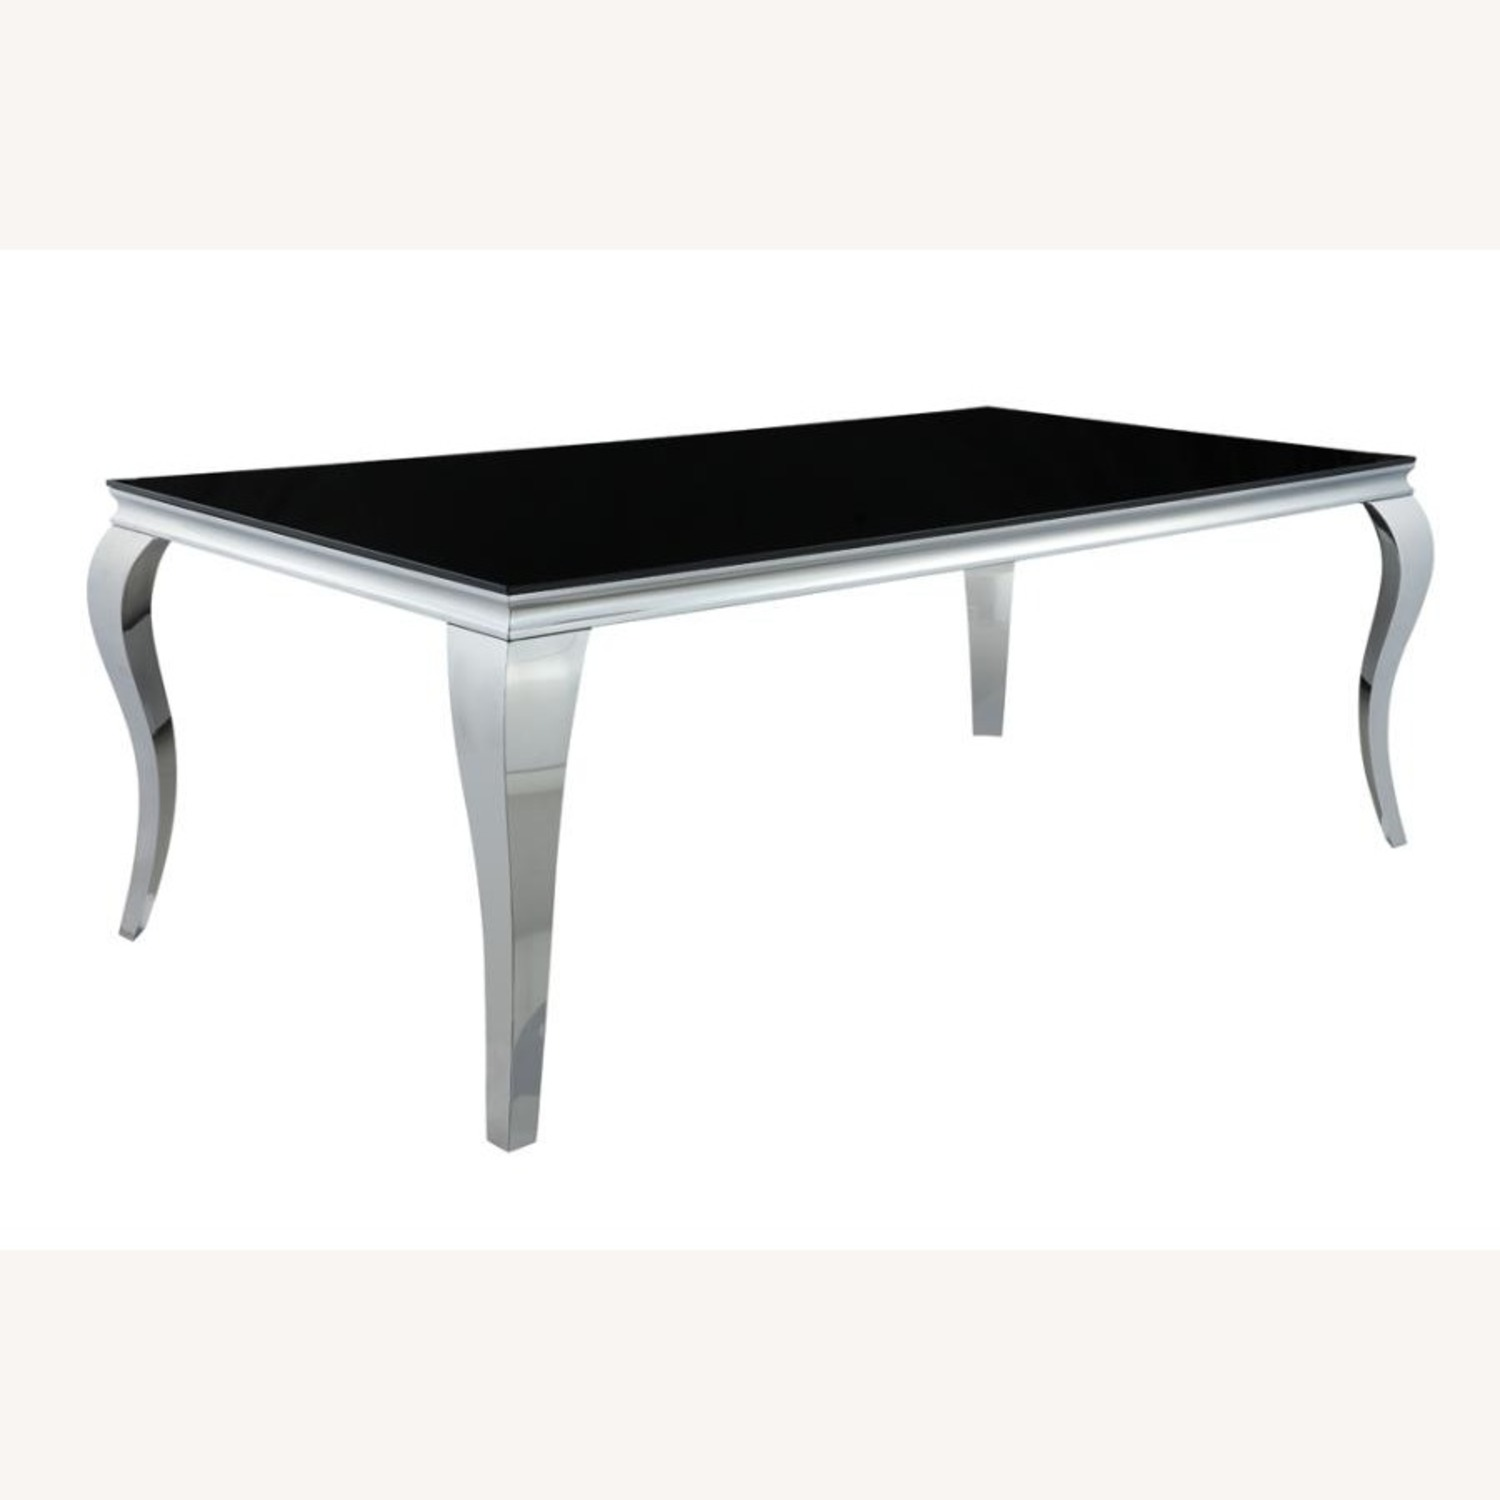 Dining Table In Chrome Finish W/ Black Top - image-0